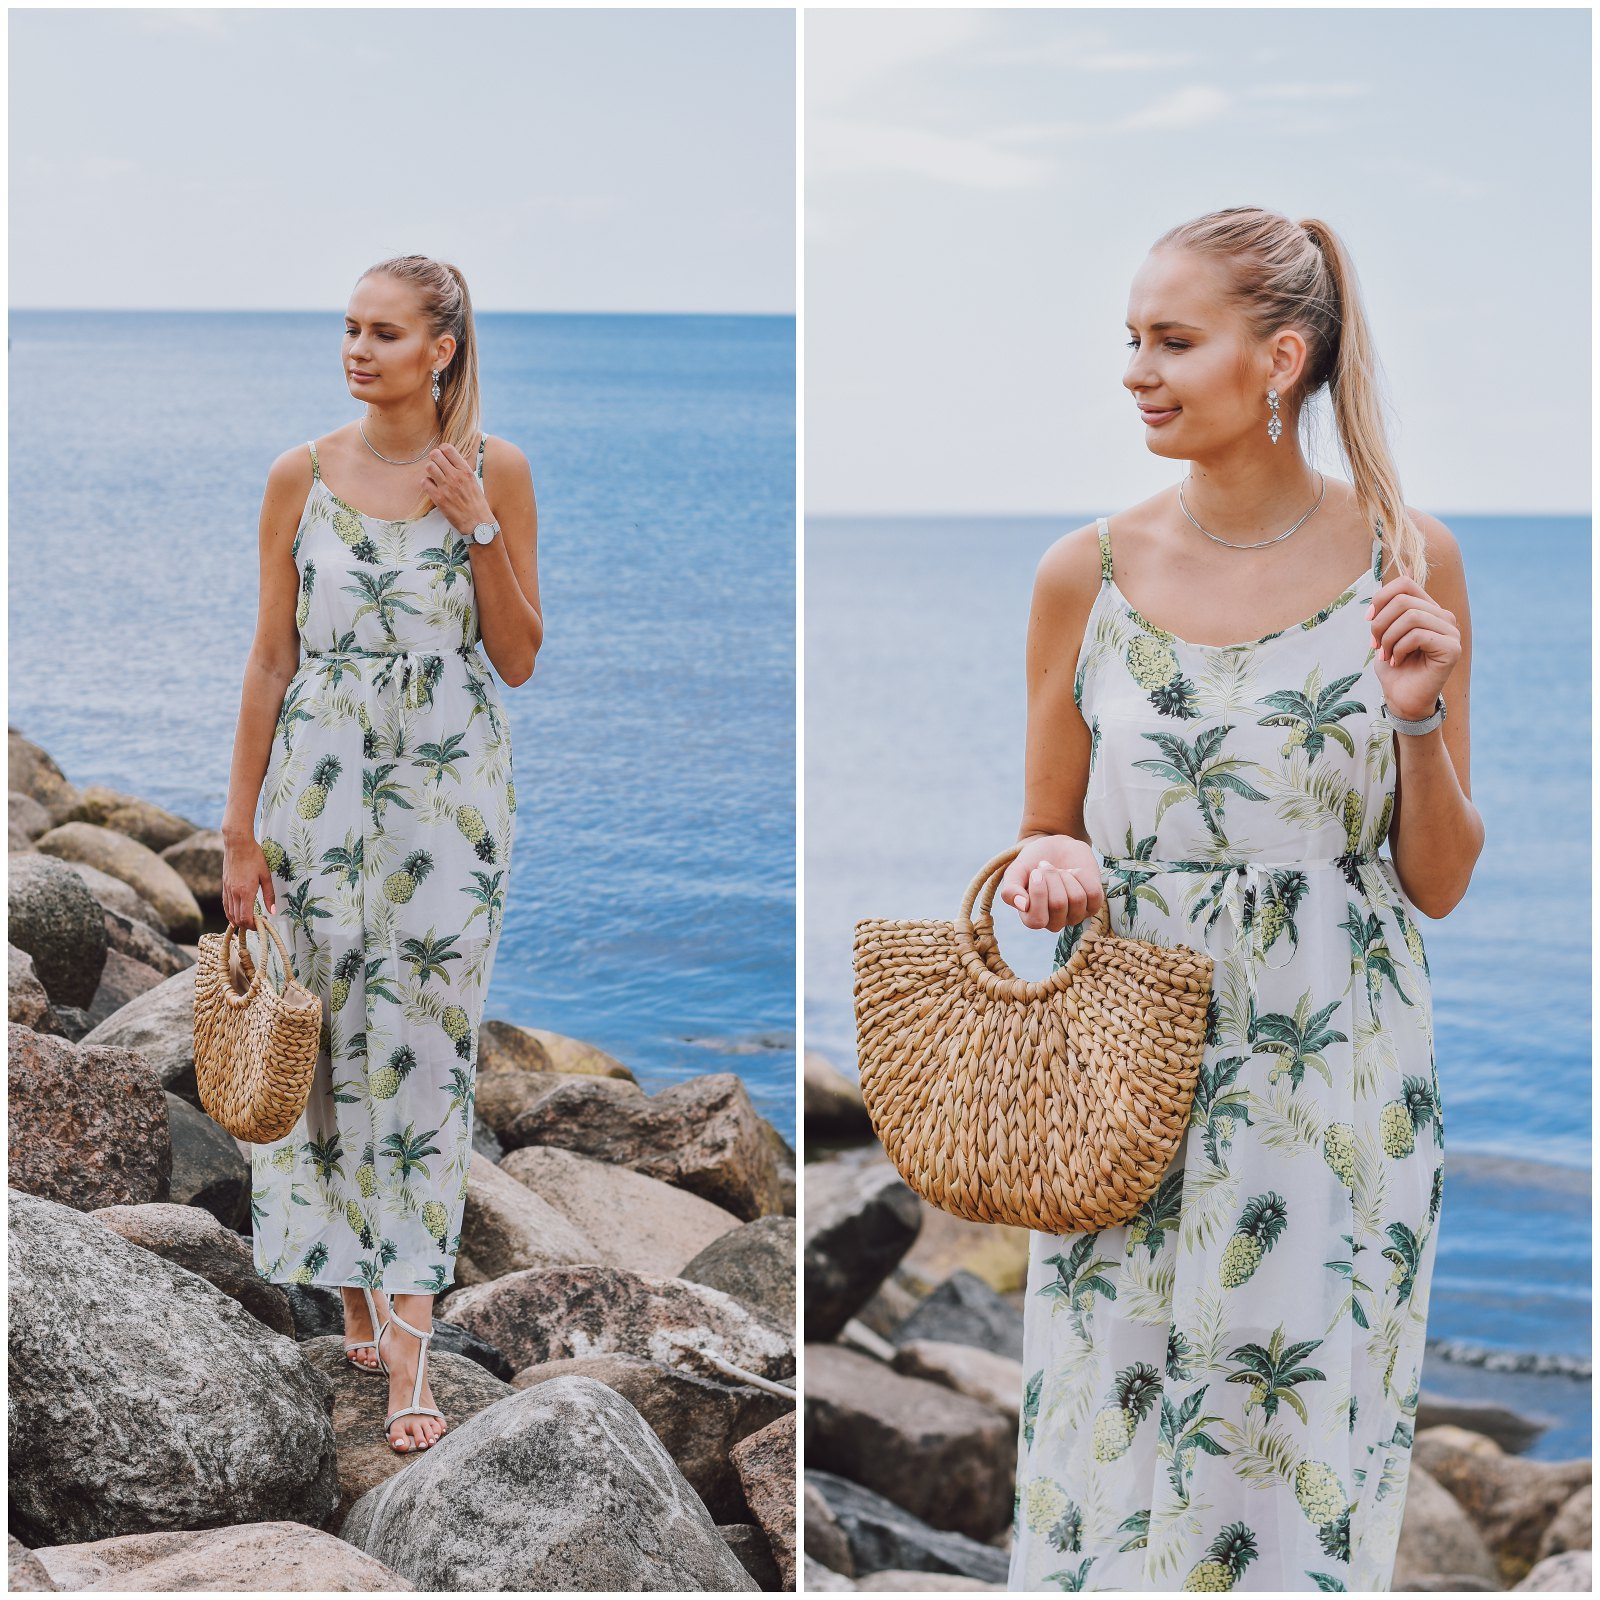 Rosegal pineapple print dress